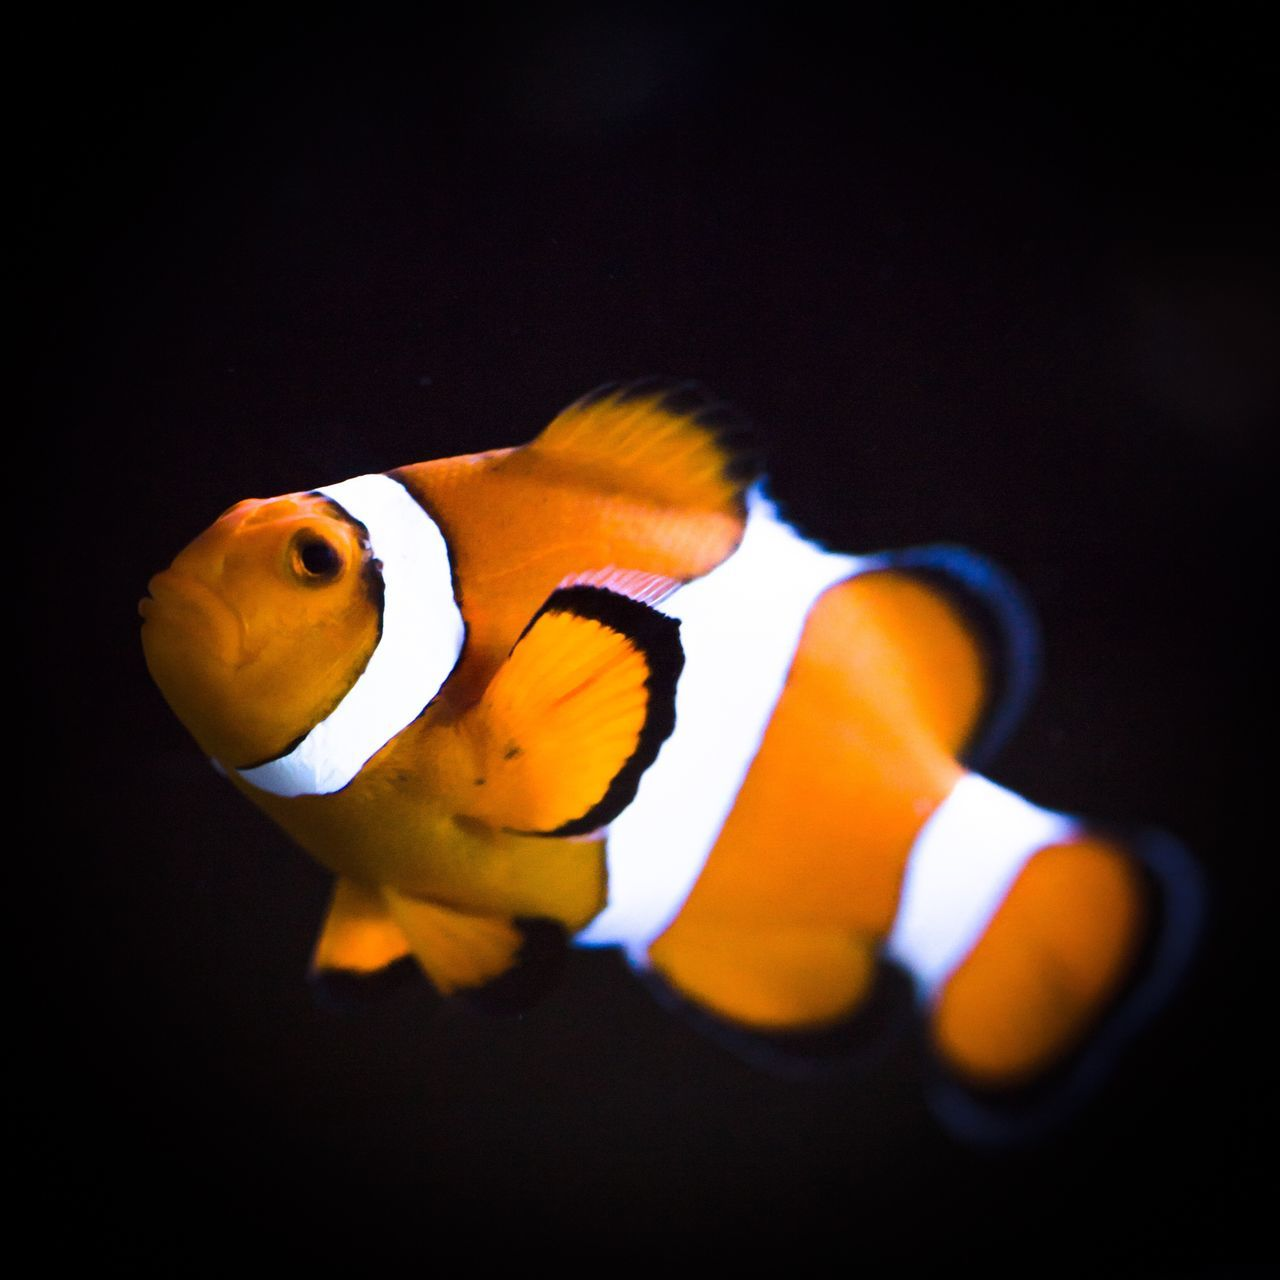 Swimming Orange Color Fish Yellow Animal Themes One Animal Underwater Clown Fish No People Indoors  Nature Aquarium Close-up Sea Life UnderSea Day Wildlife Photography Clownfish Wildlife & Nature Underwaterphotography Underwater Photography Underwater World Scubadiving Scuba Diving SCUBA